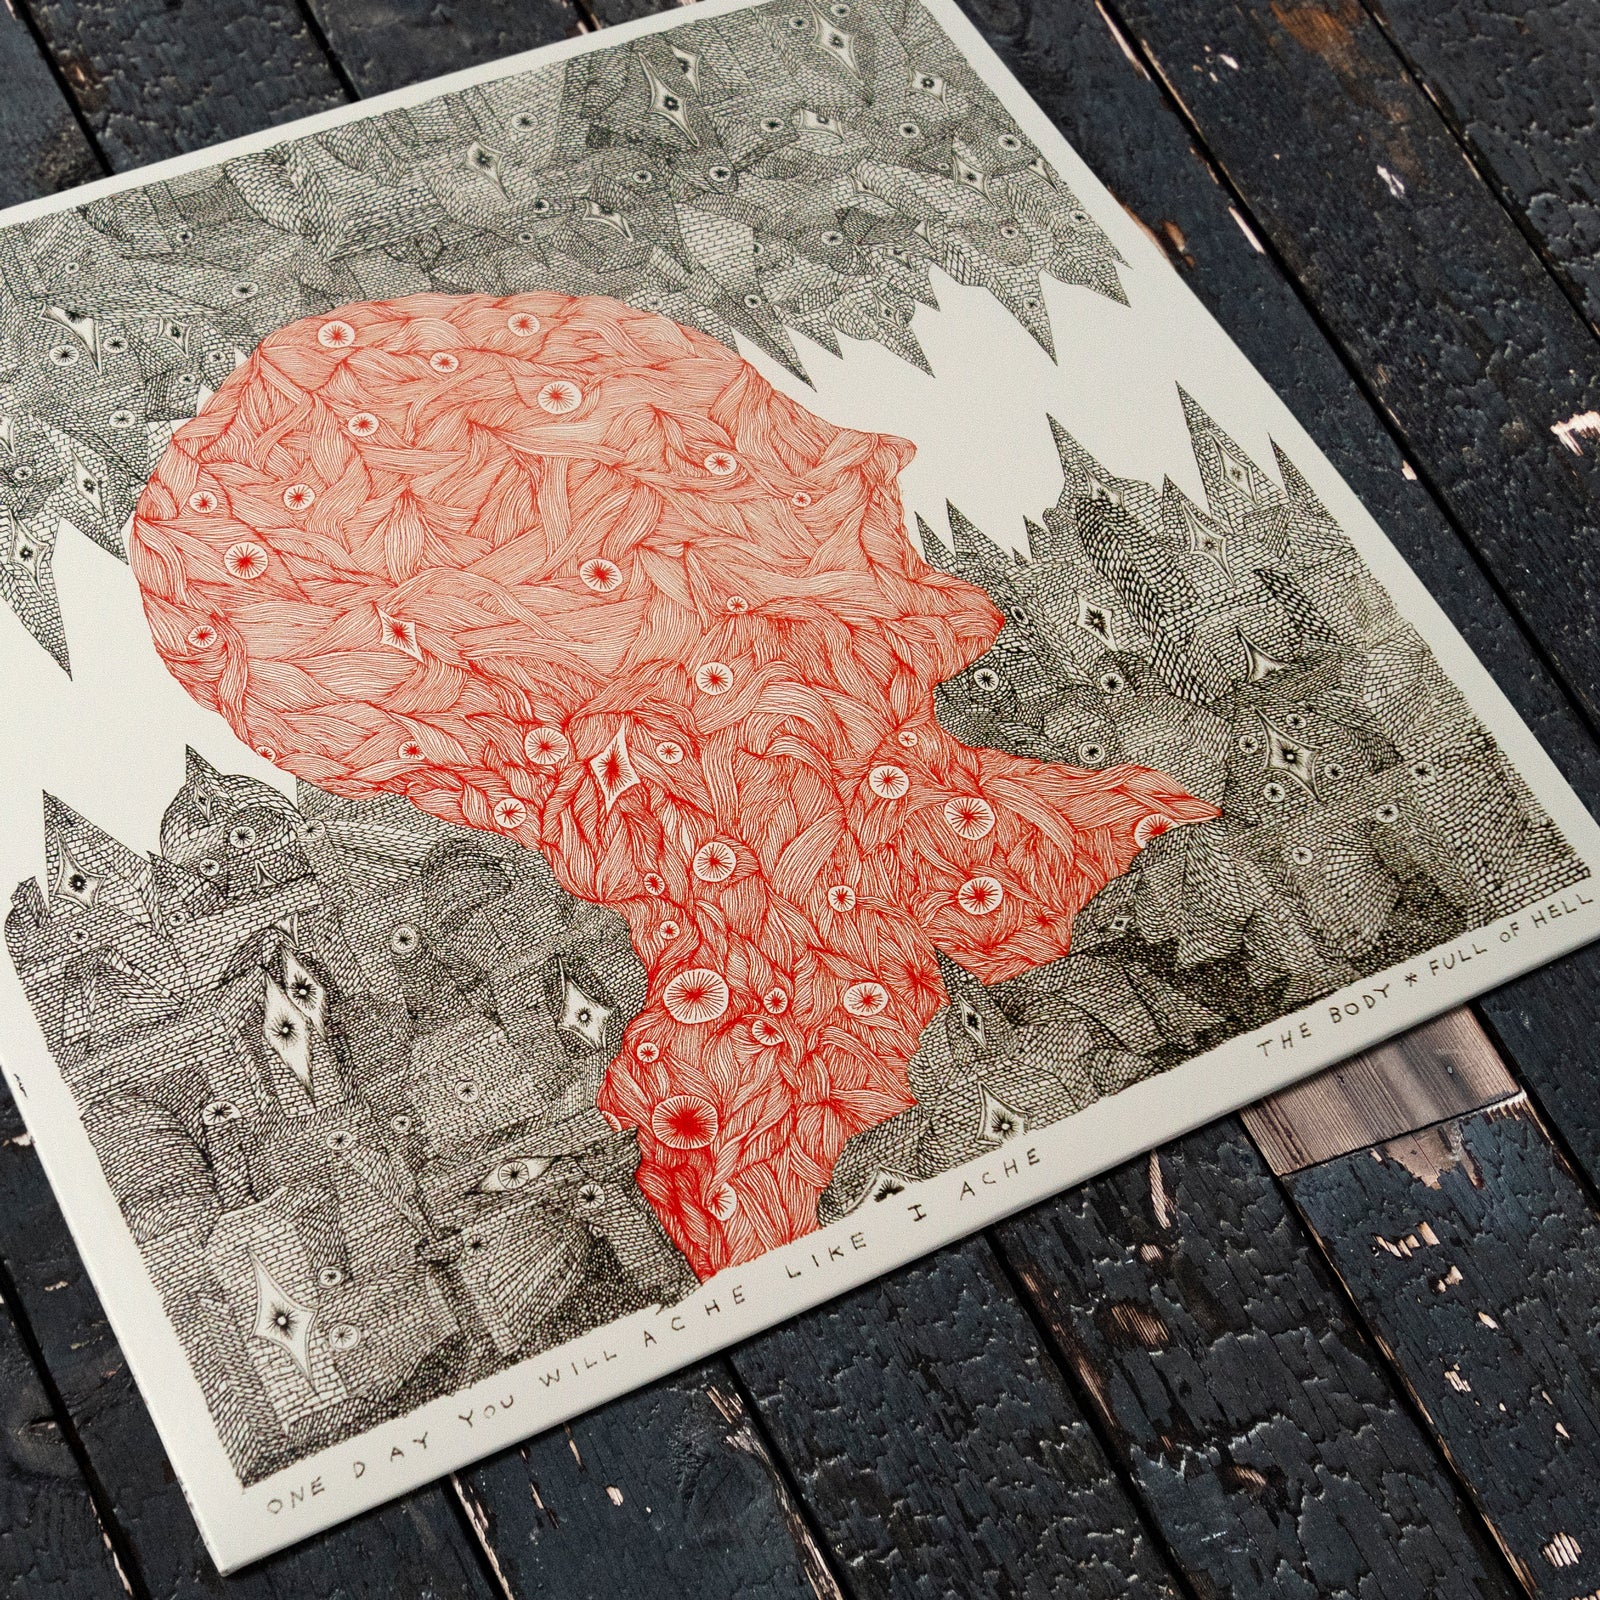 THE BODY & FULL OF HELL - ONE DAY YOU WILL ACHE LIKE I ACHE - 12 VINYL